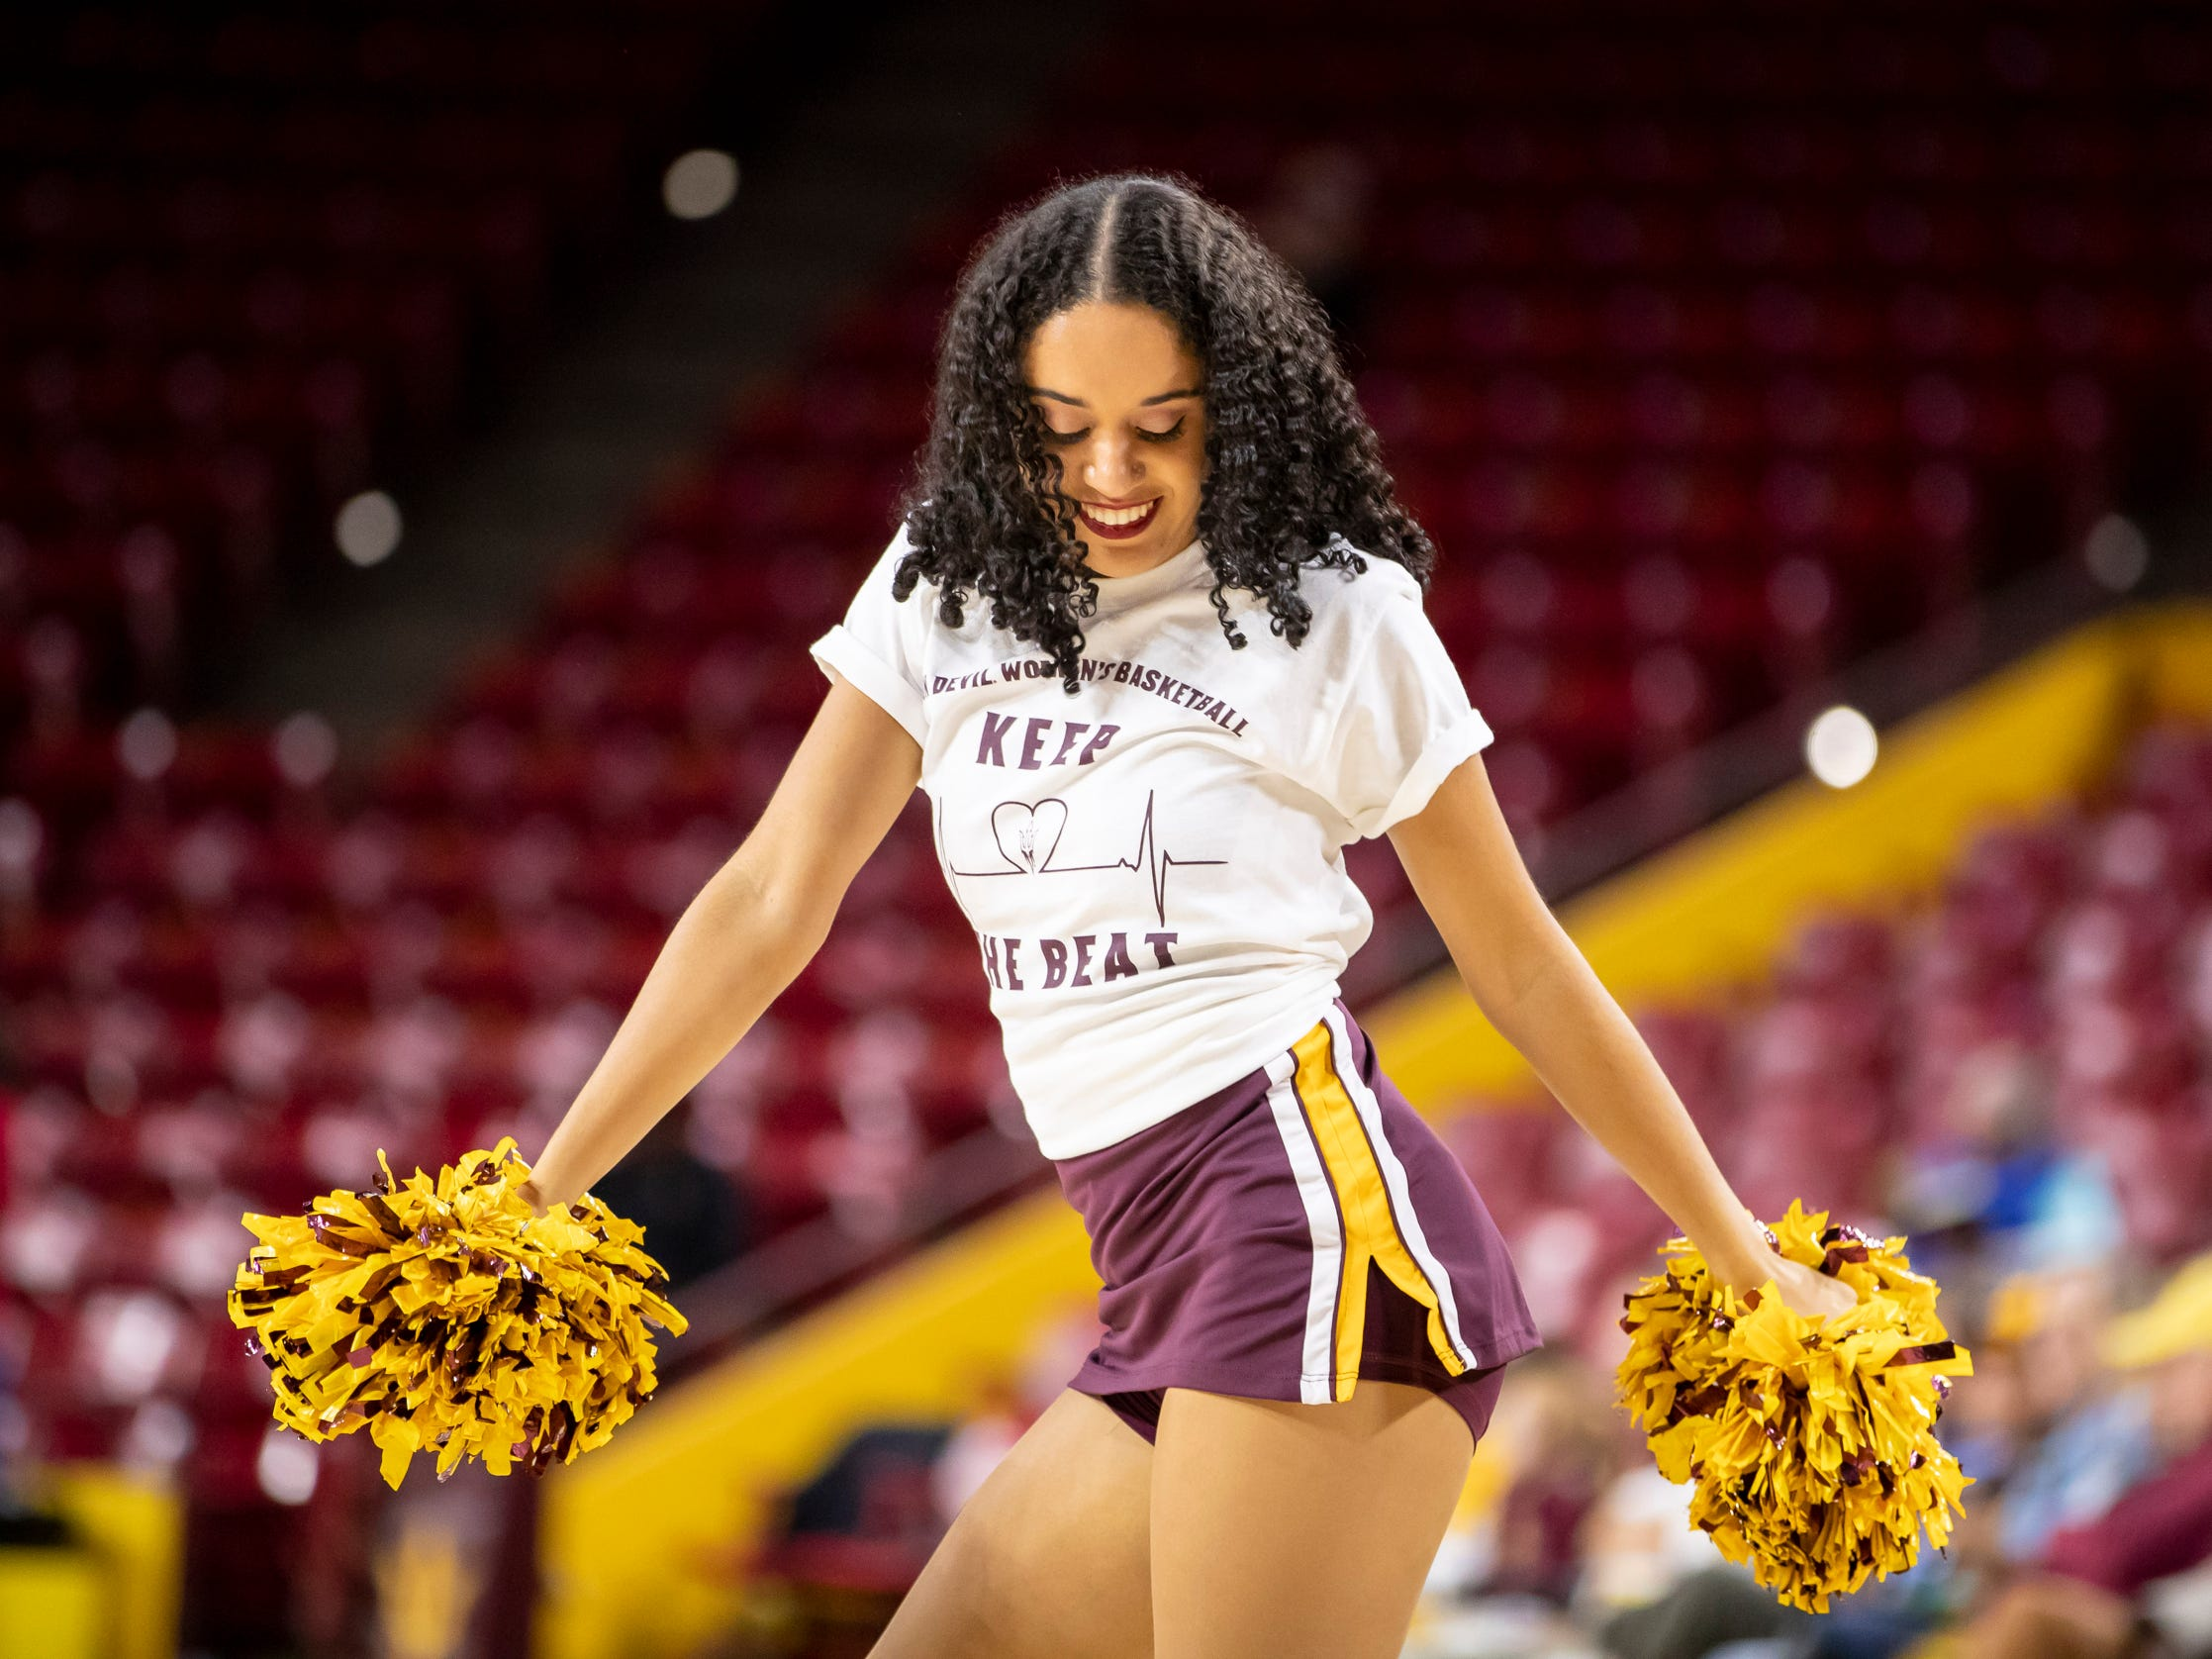 An Arizona State cheerleader cheers during the game against Tulsa Golden Hurricane at Wells Fargo Arena on Sunday, December 2, 2018 in Tempe, Arizona.